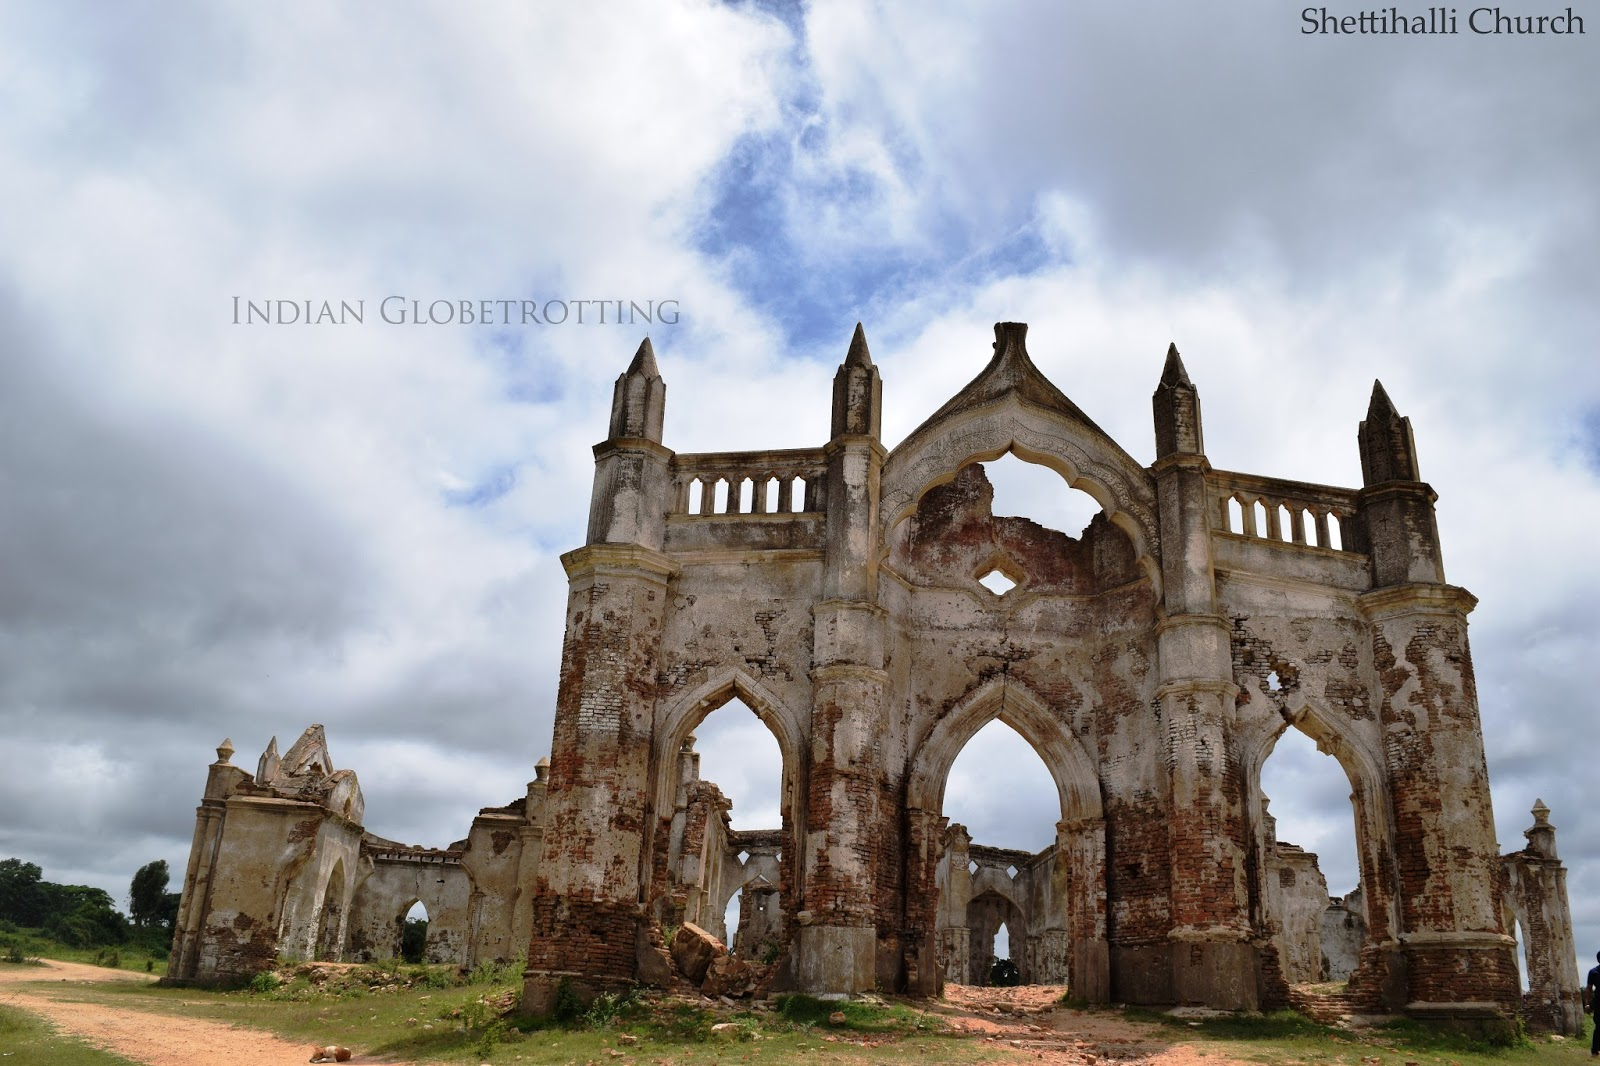 Shettihalli church near Hassan was constructed by French Missionaries